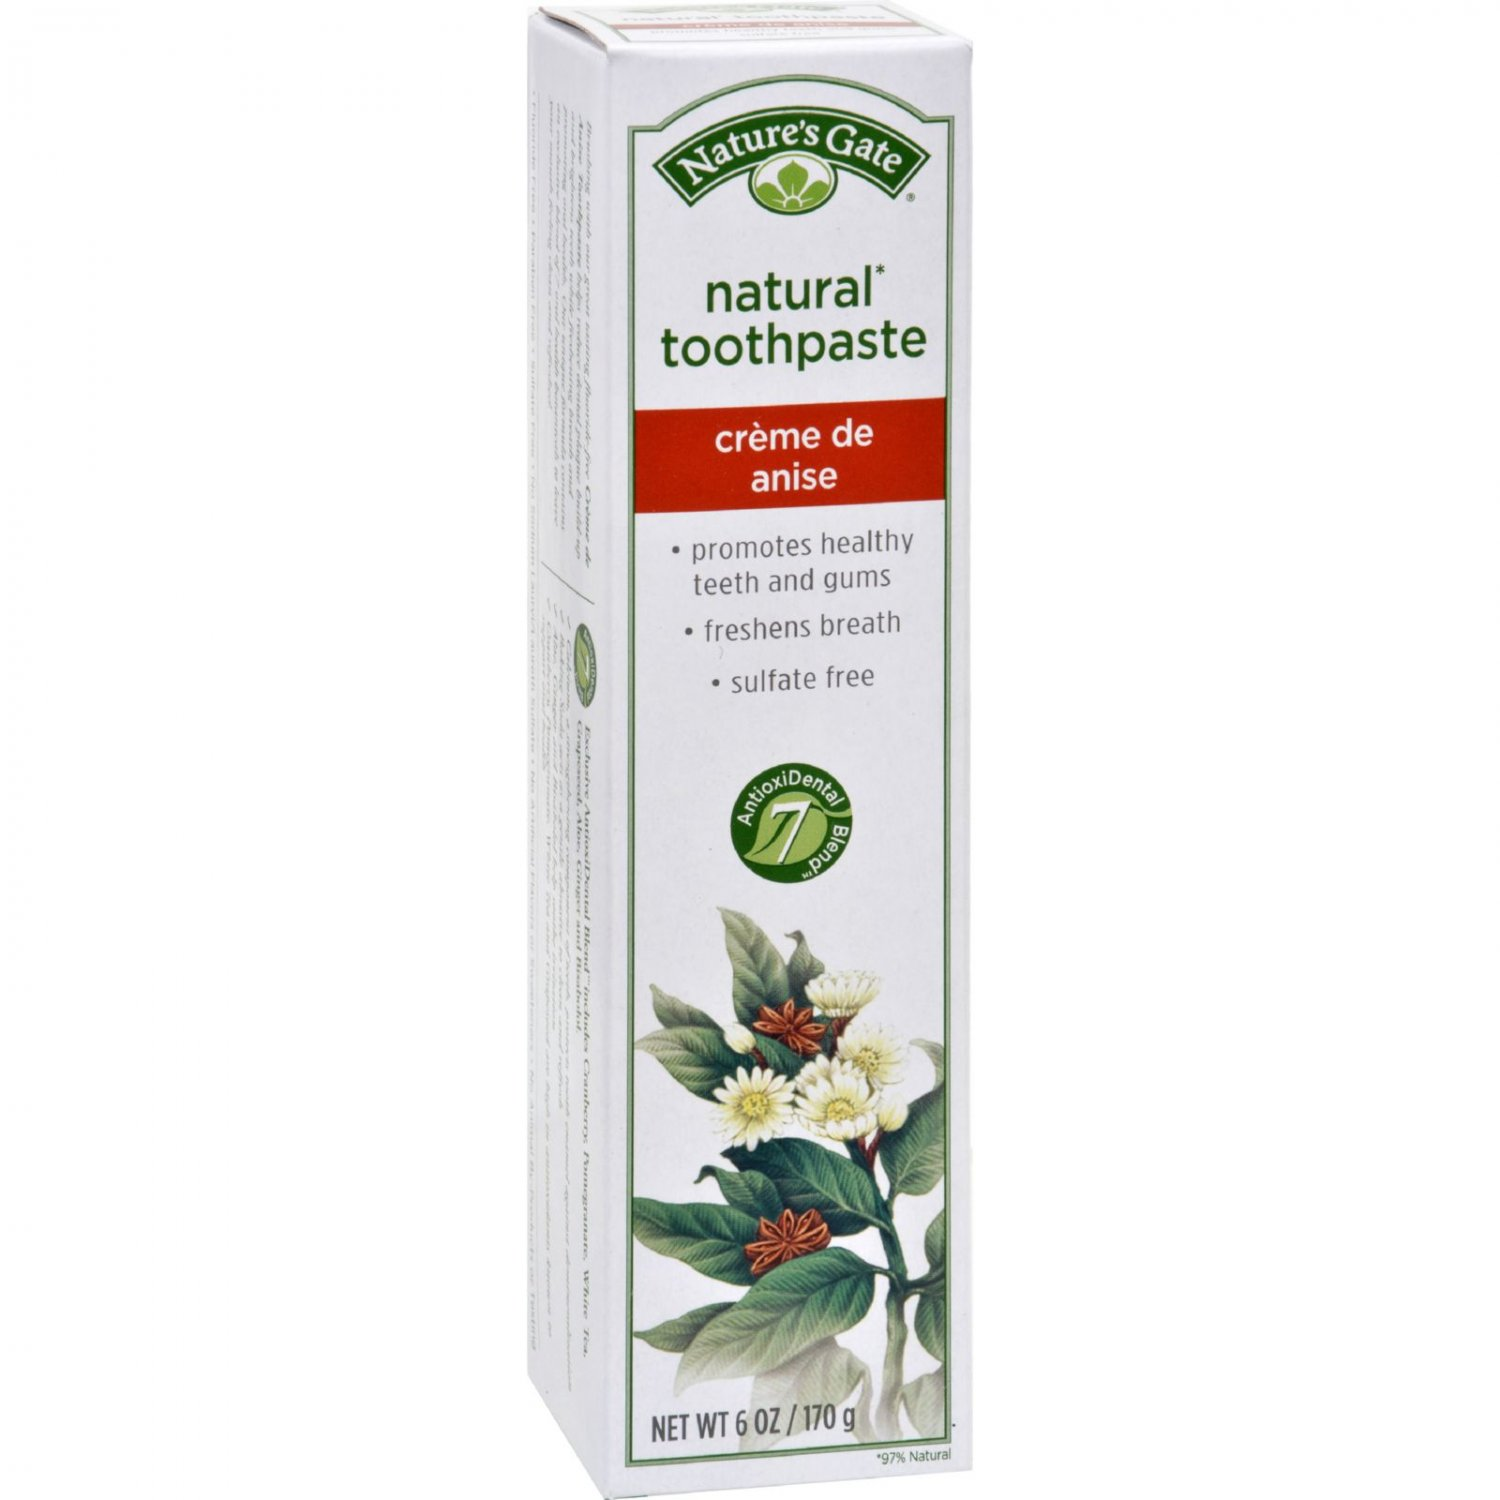 Nature's Gate Natural Toothpaste Creme de Anise - 6 oz - Case of 6